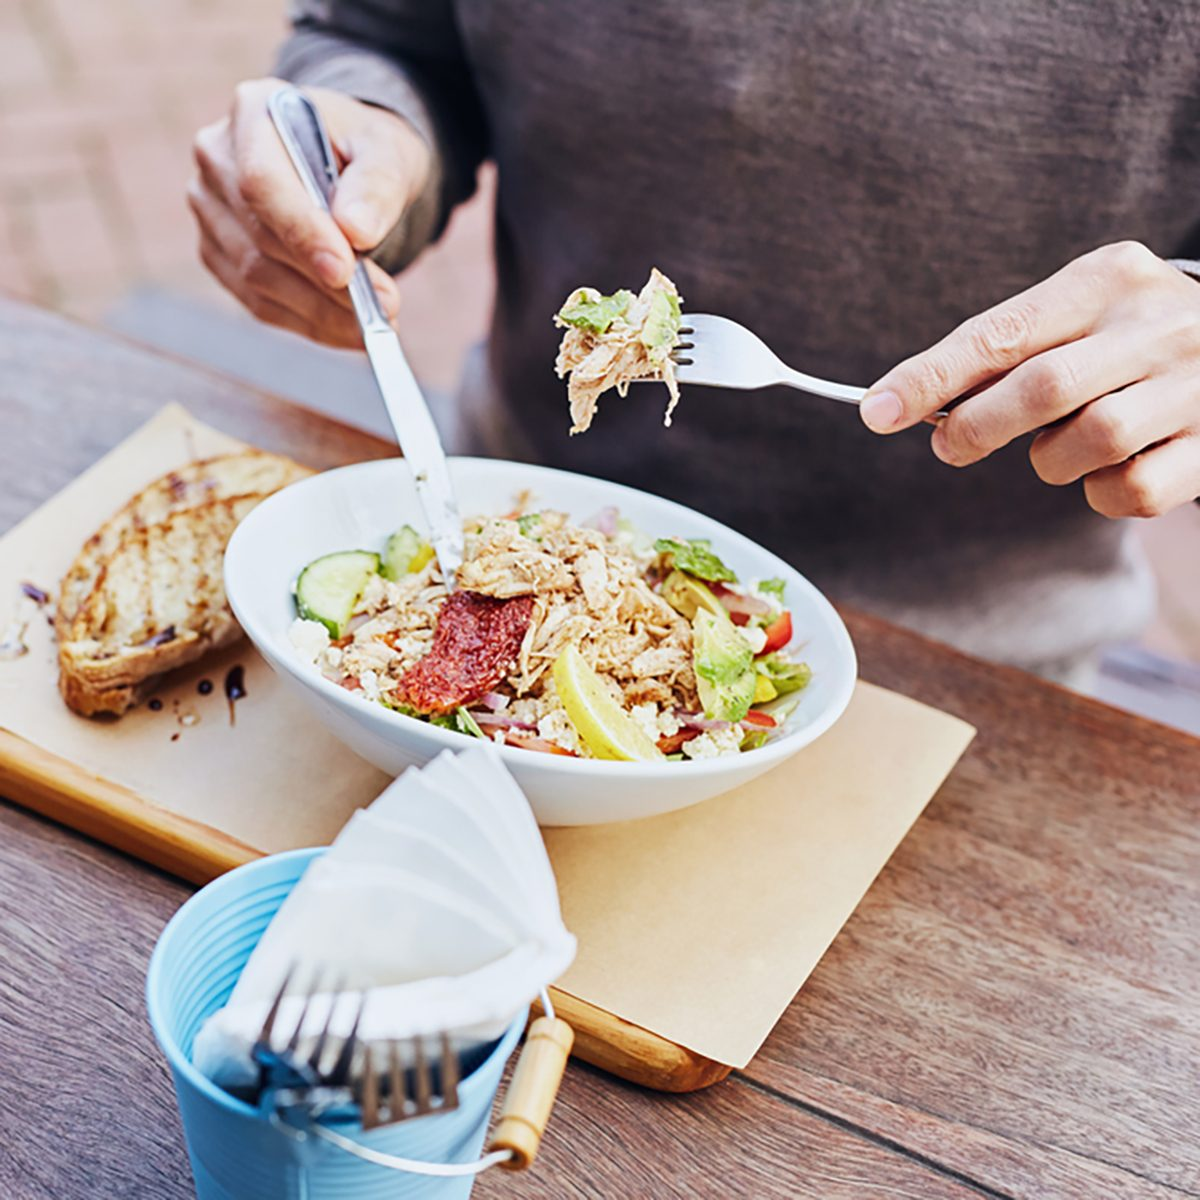 Cropped image of a man on his lunch break eating a fresh and healthy salad with chicken, avocado, sundried tomatoes and fresh sliced baguette on the side while sitting at a wooden table.